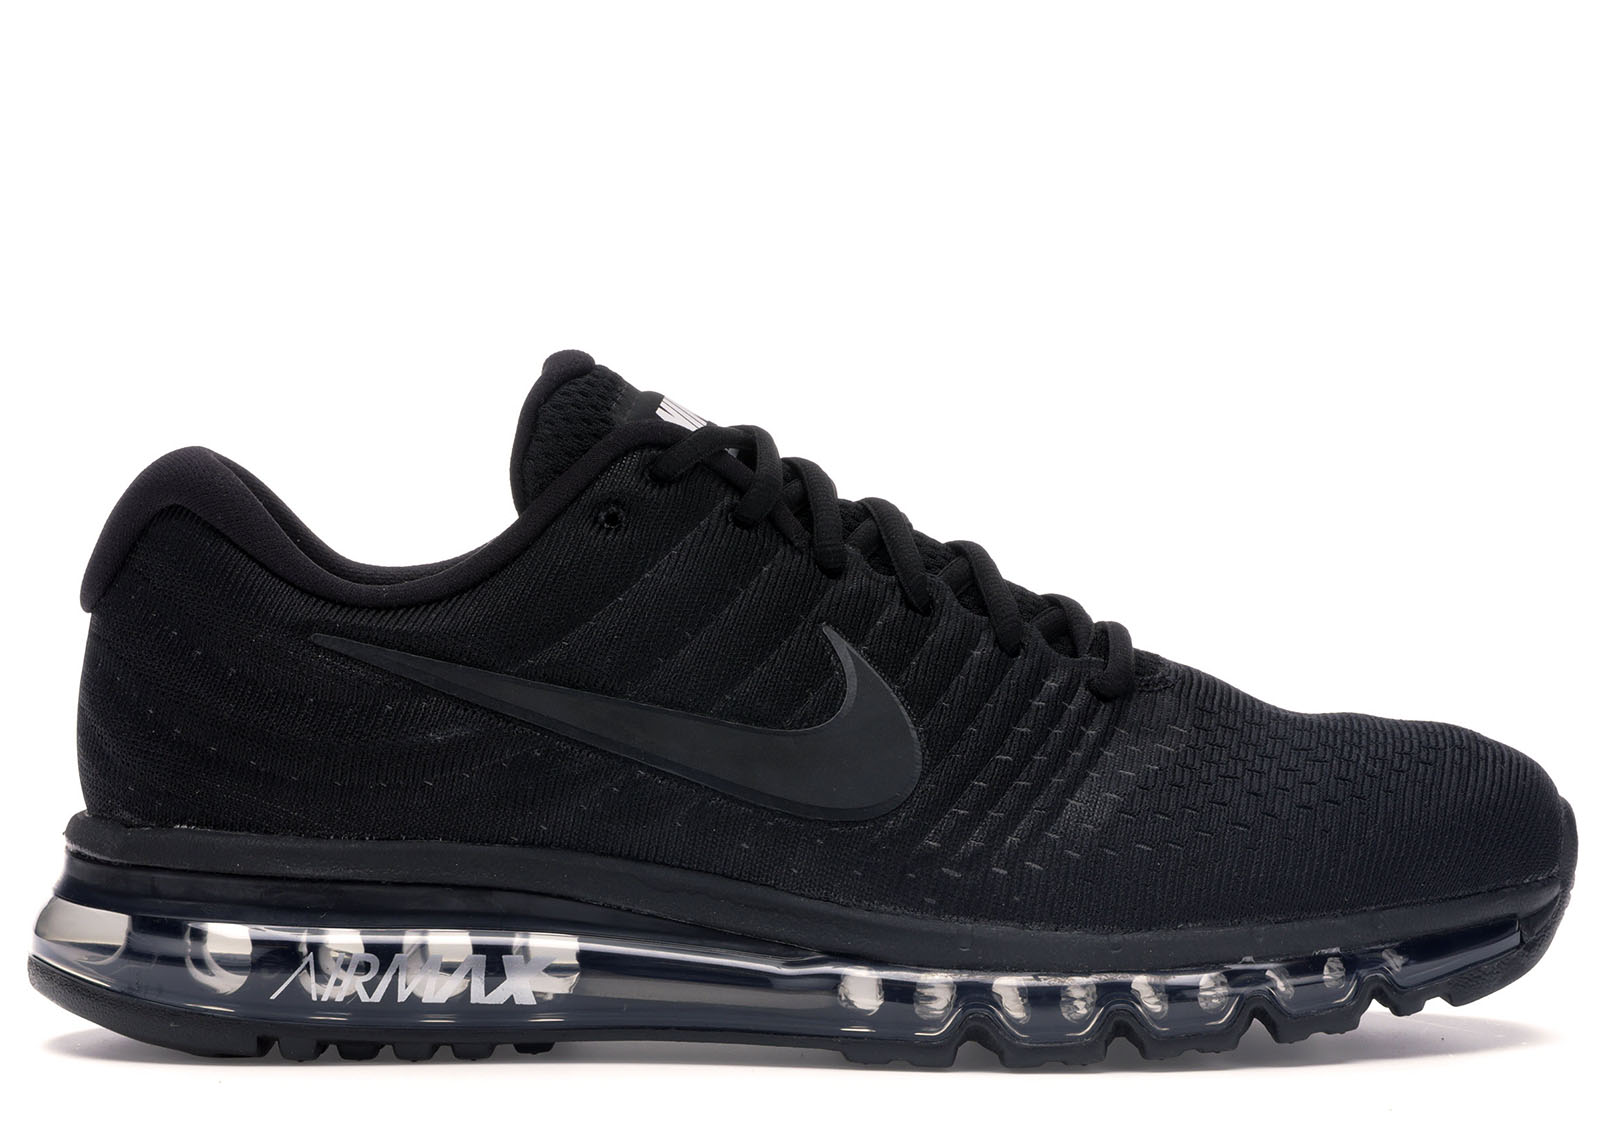 Air Max 2017 Triple Black - 849559-004